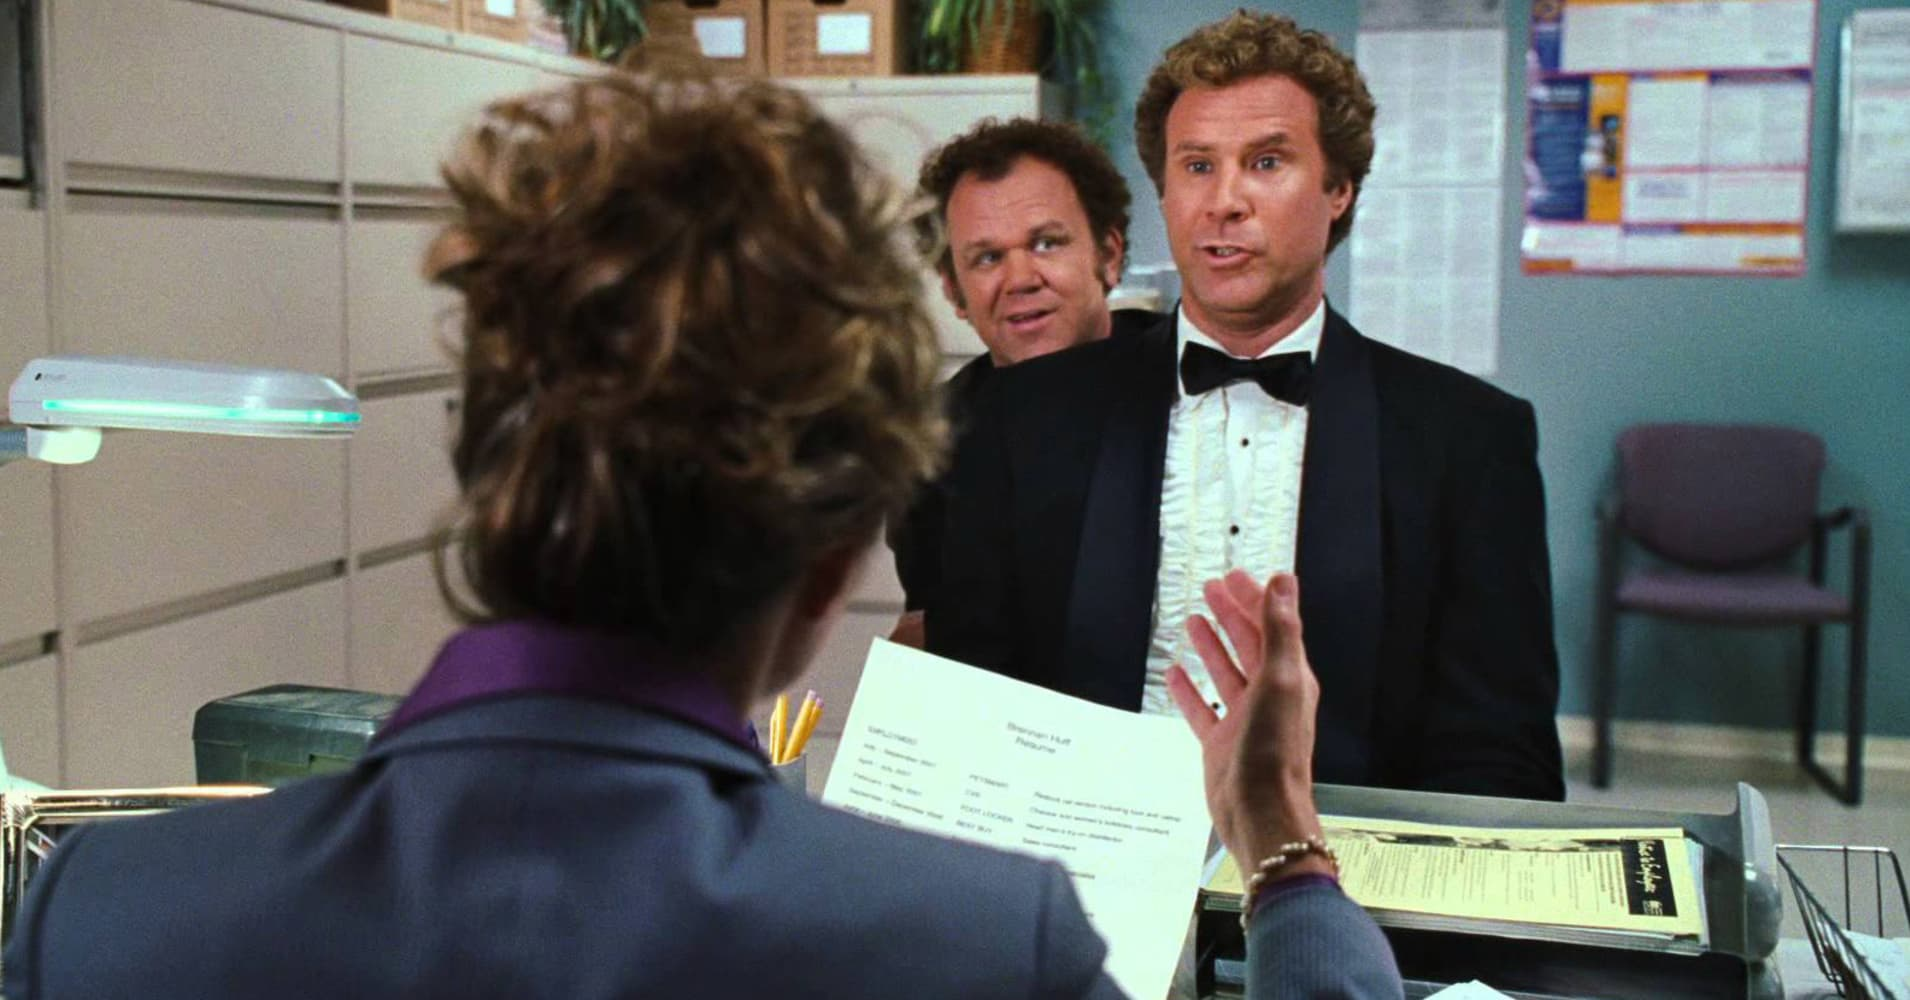 Will Ferrell and John C. Reilly in Stepbrothers.